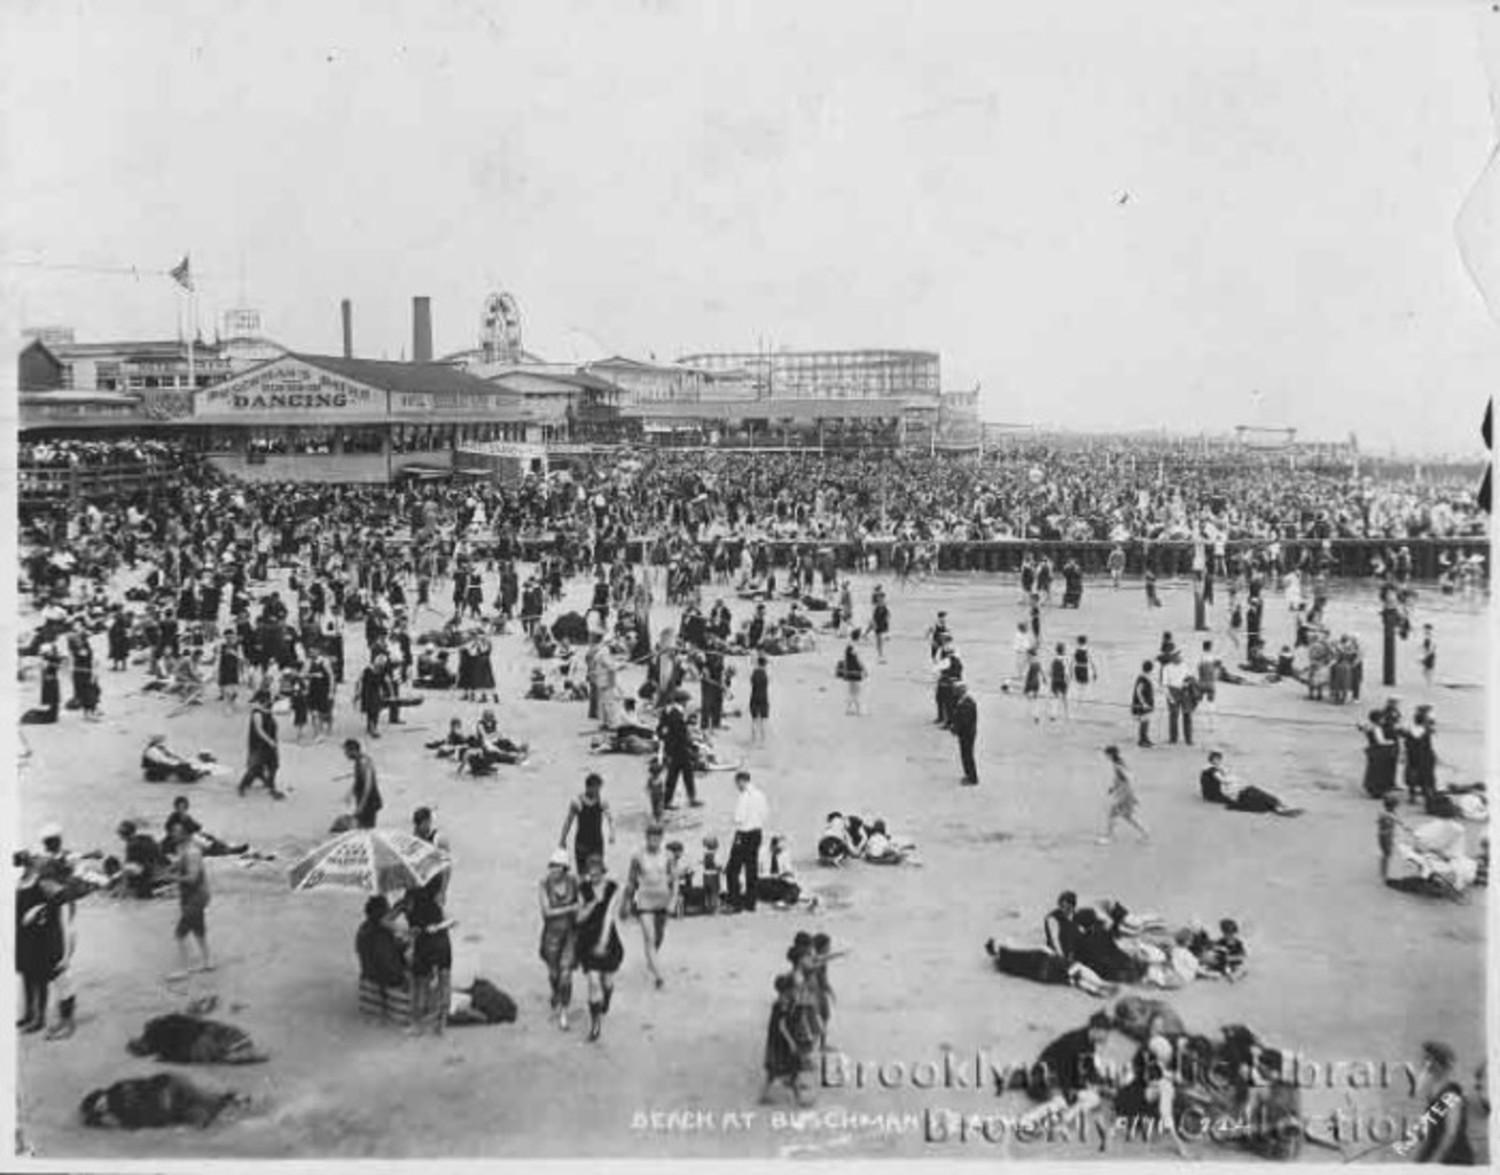 Don't see a lot of guys in suits on the beach nowadays. 1919